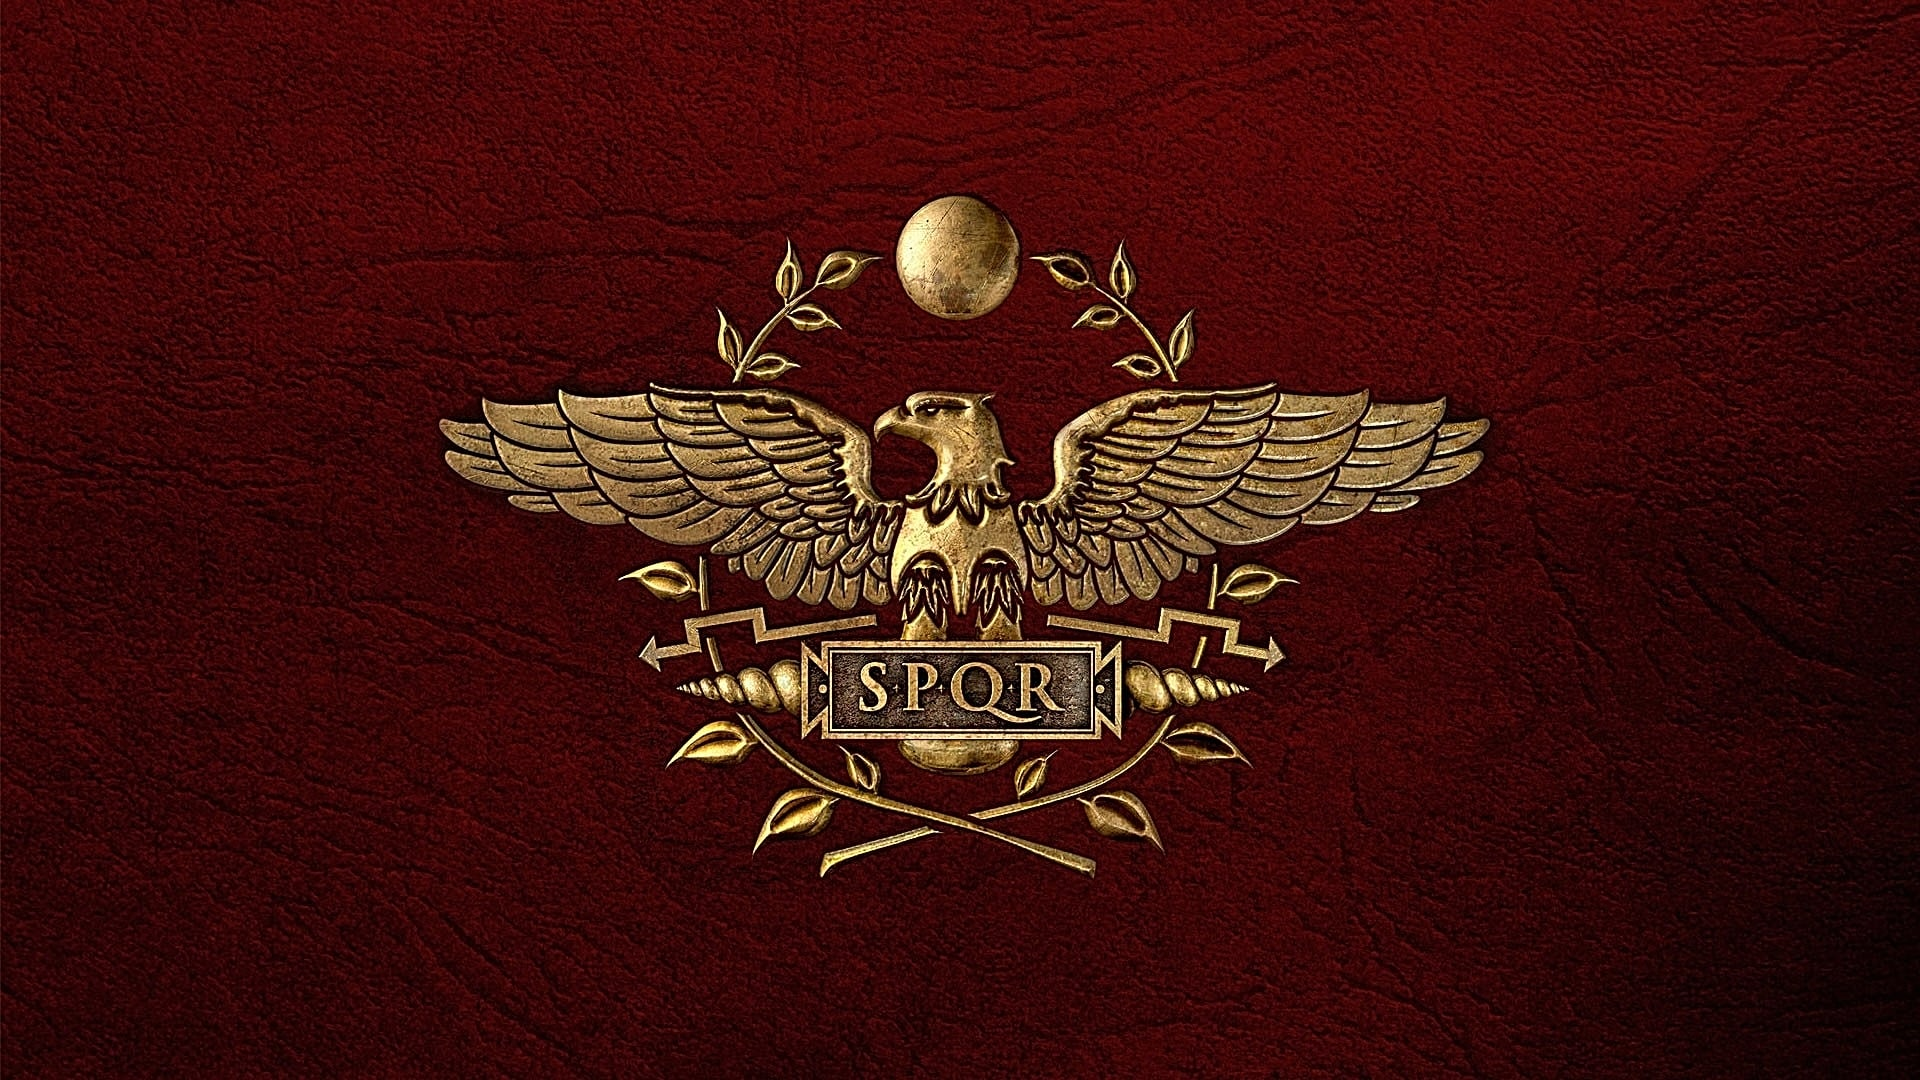 Ancient Rome: The Rise and Fall of an Empire Trailer